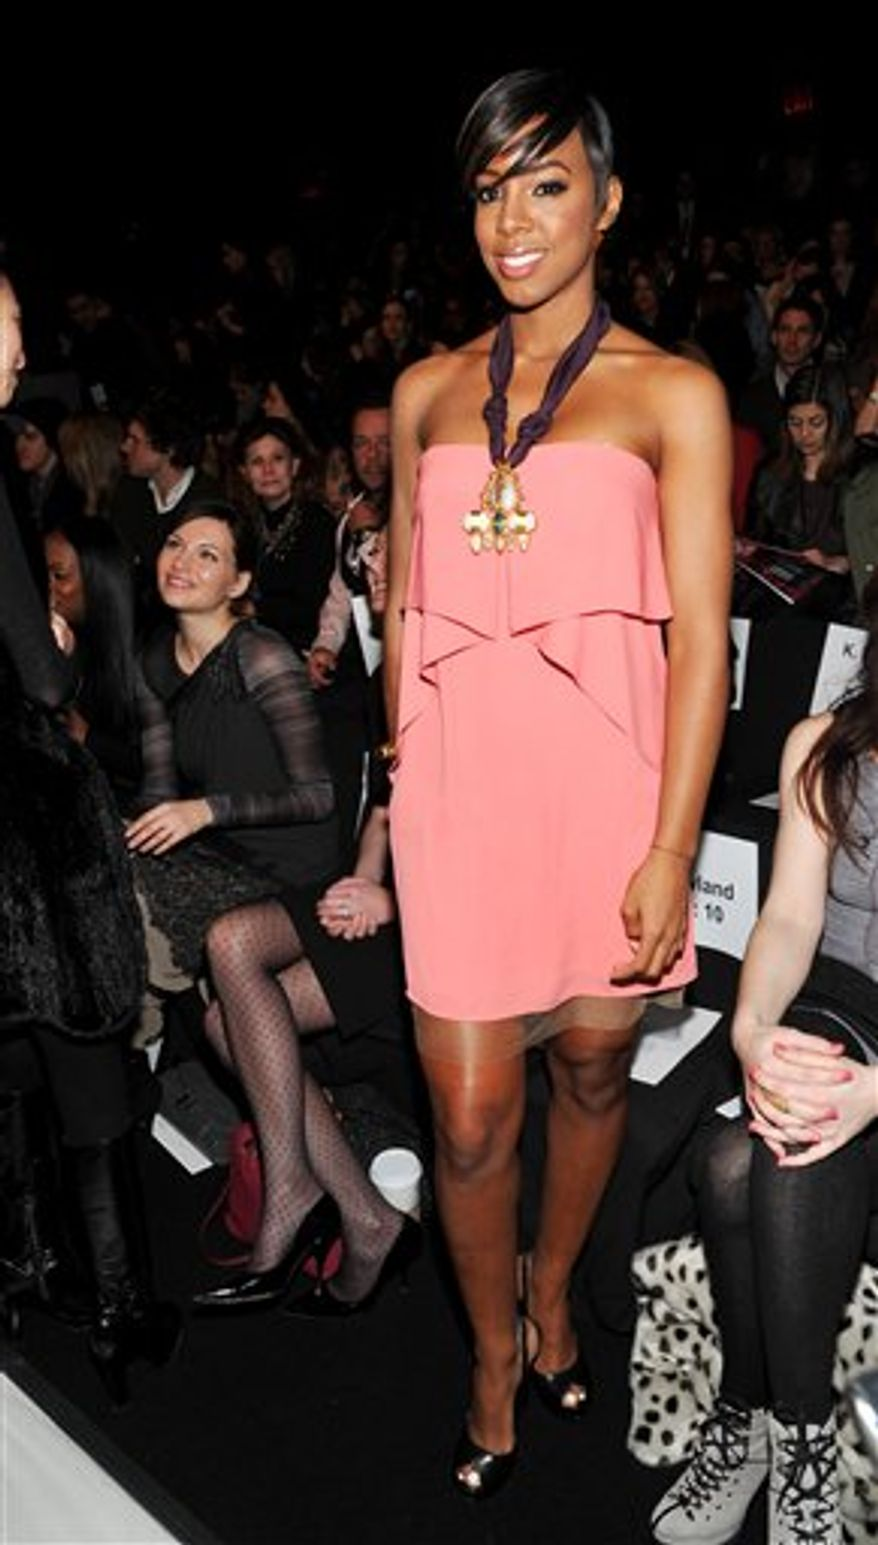 Singer Kelly Rowland attends the BCBGMAXAZRIA Fall 2011 fashion show at Mercedes-Benz Fashion Week on Thursday, Feb. 10, 2011 in New York. (AP Photo/Evan Agostini)